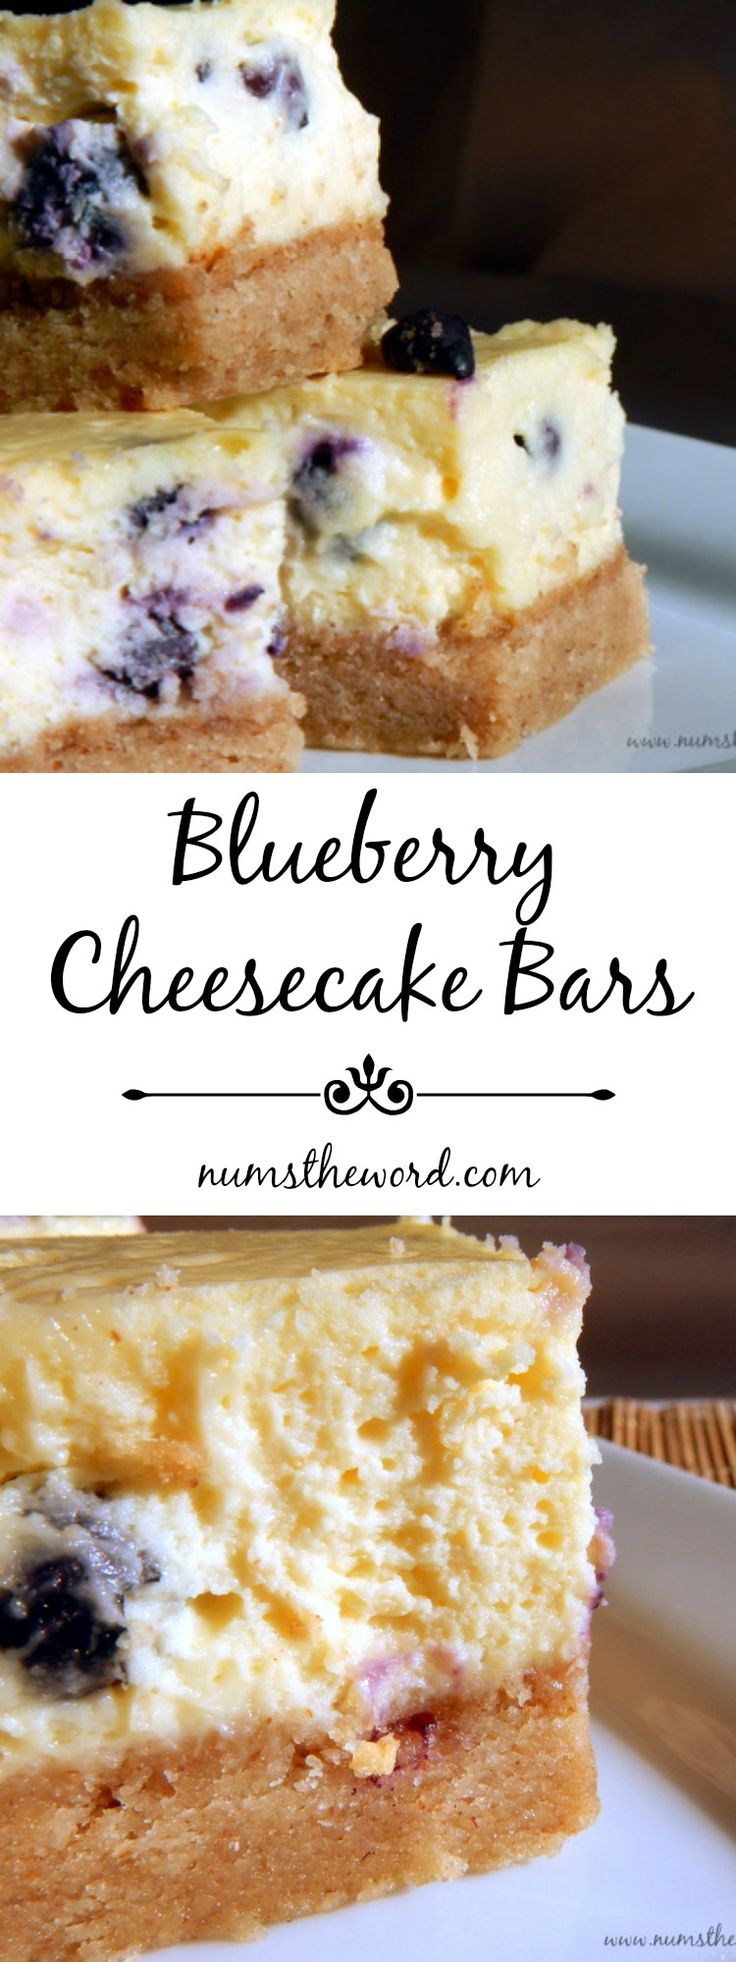 This easy cheesecake is great for beginners and having it as a bar is easy to eat at a gathering! Substitute with your favorite berry for a nummy treat!